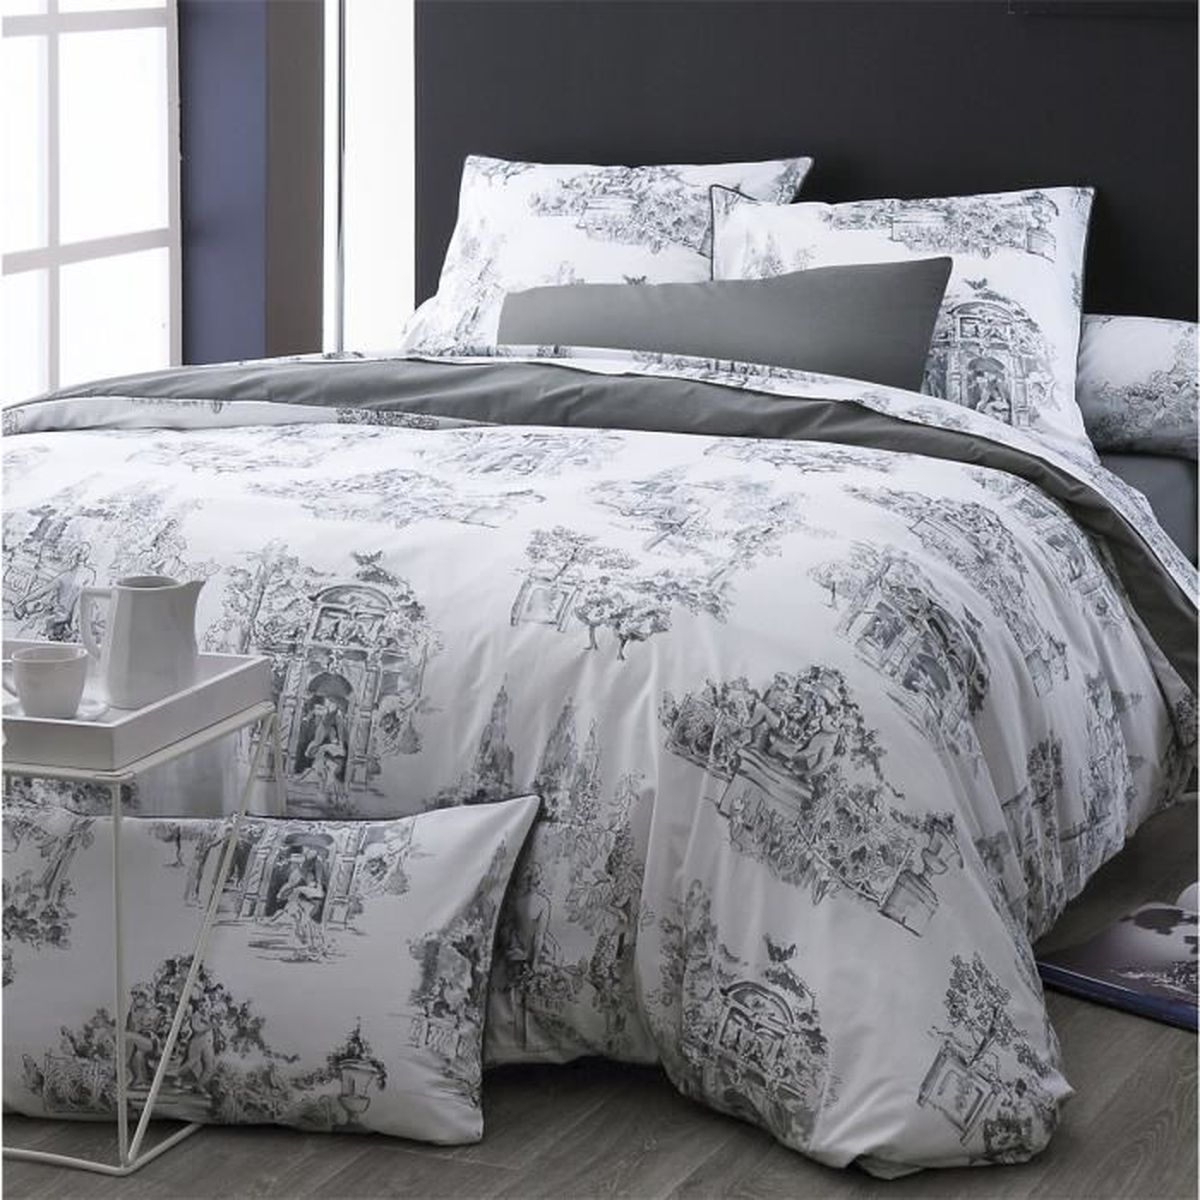 housse de couette toile de jouy gris monceau 260 x 240 cm anthracite blanc achat vente. Black Bedroom Furniture Sets. Home Design Ideas